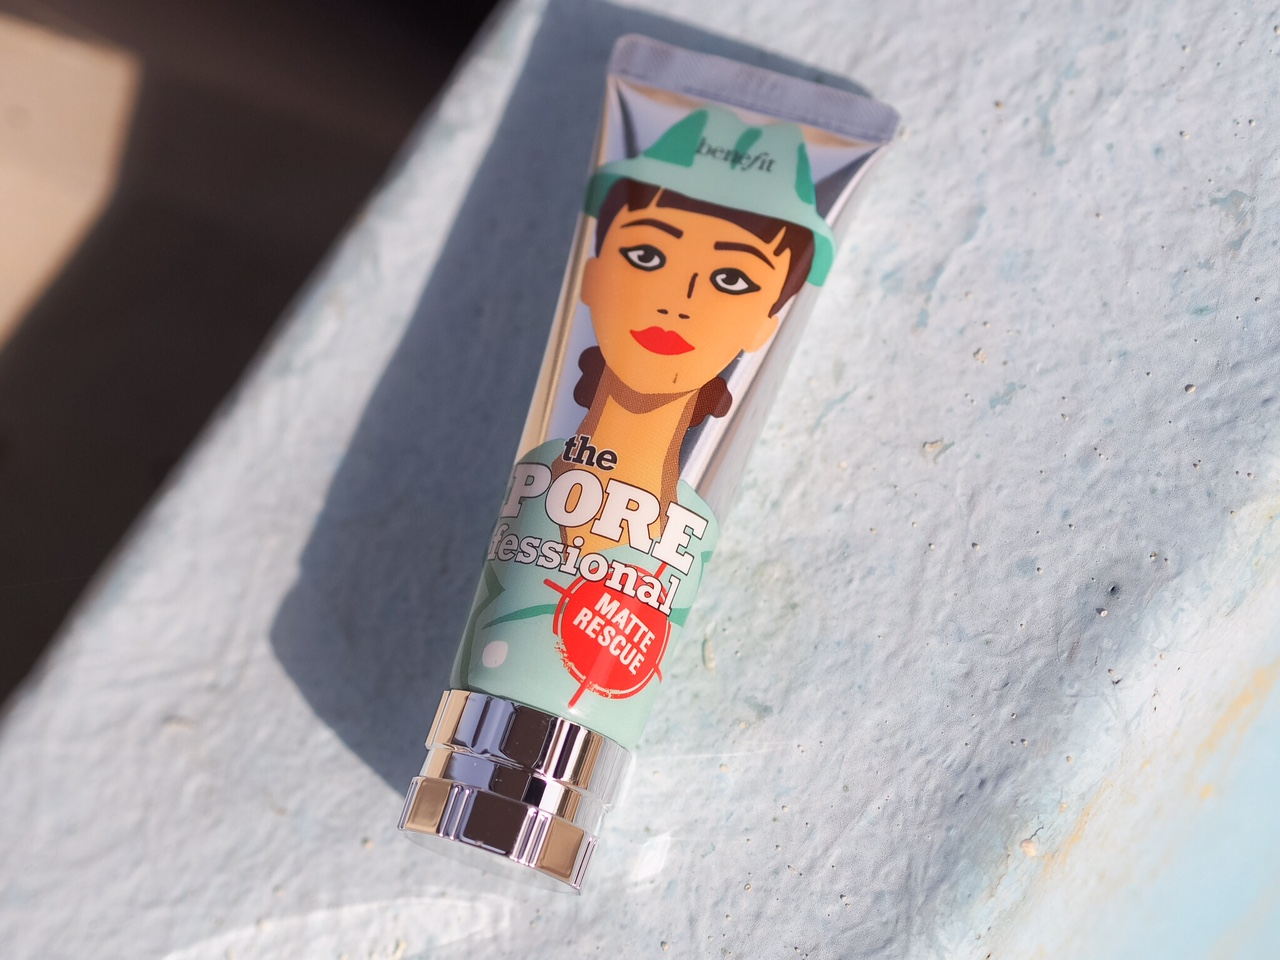 The Pore Fessional Matte Rescue Benefit cosmetics